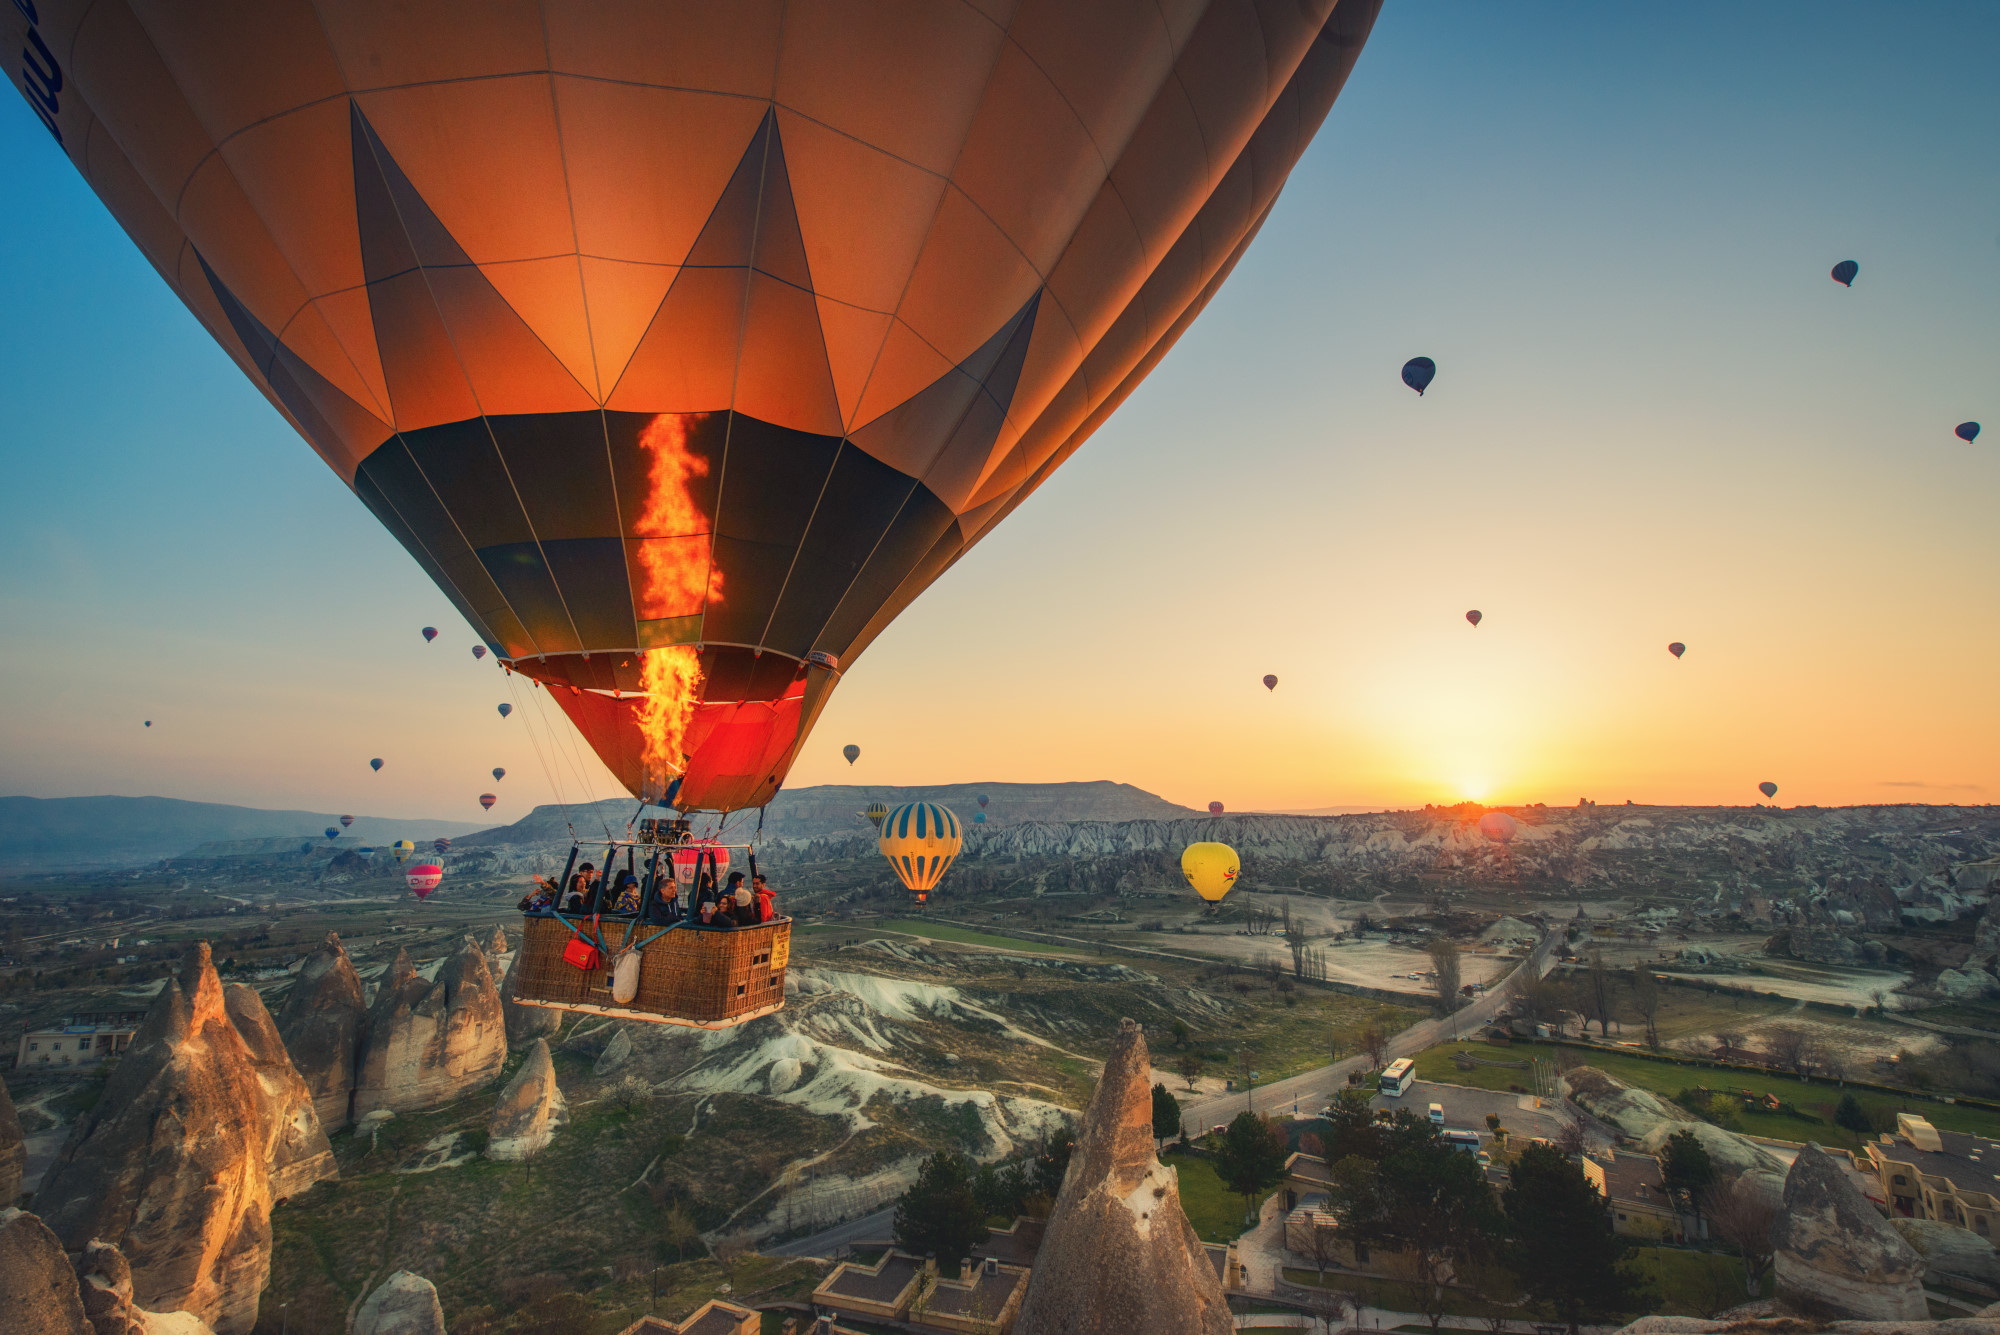 Dreams of Cappadocia, Turkey